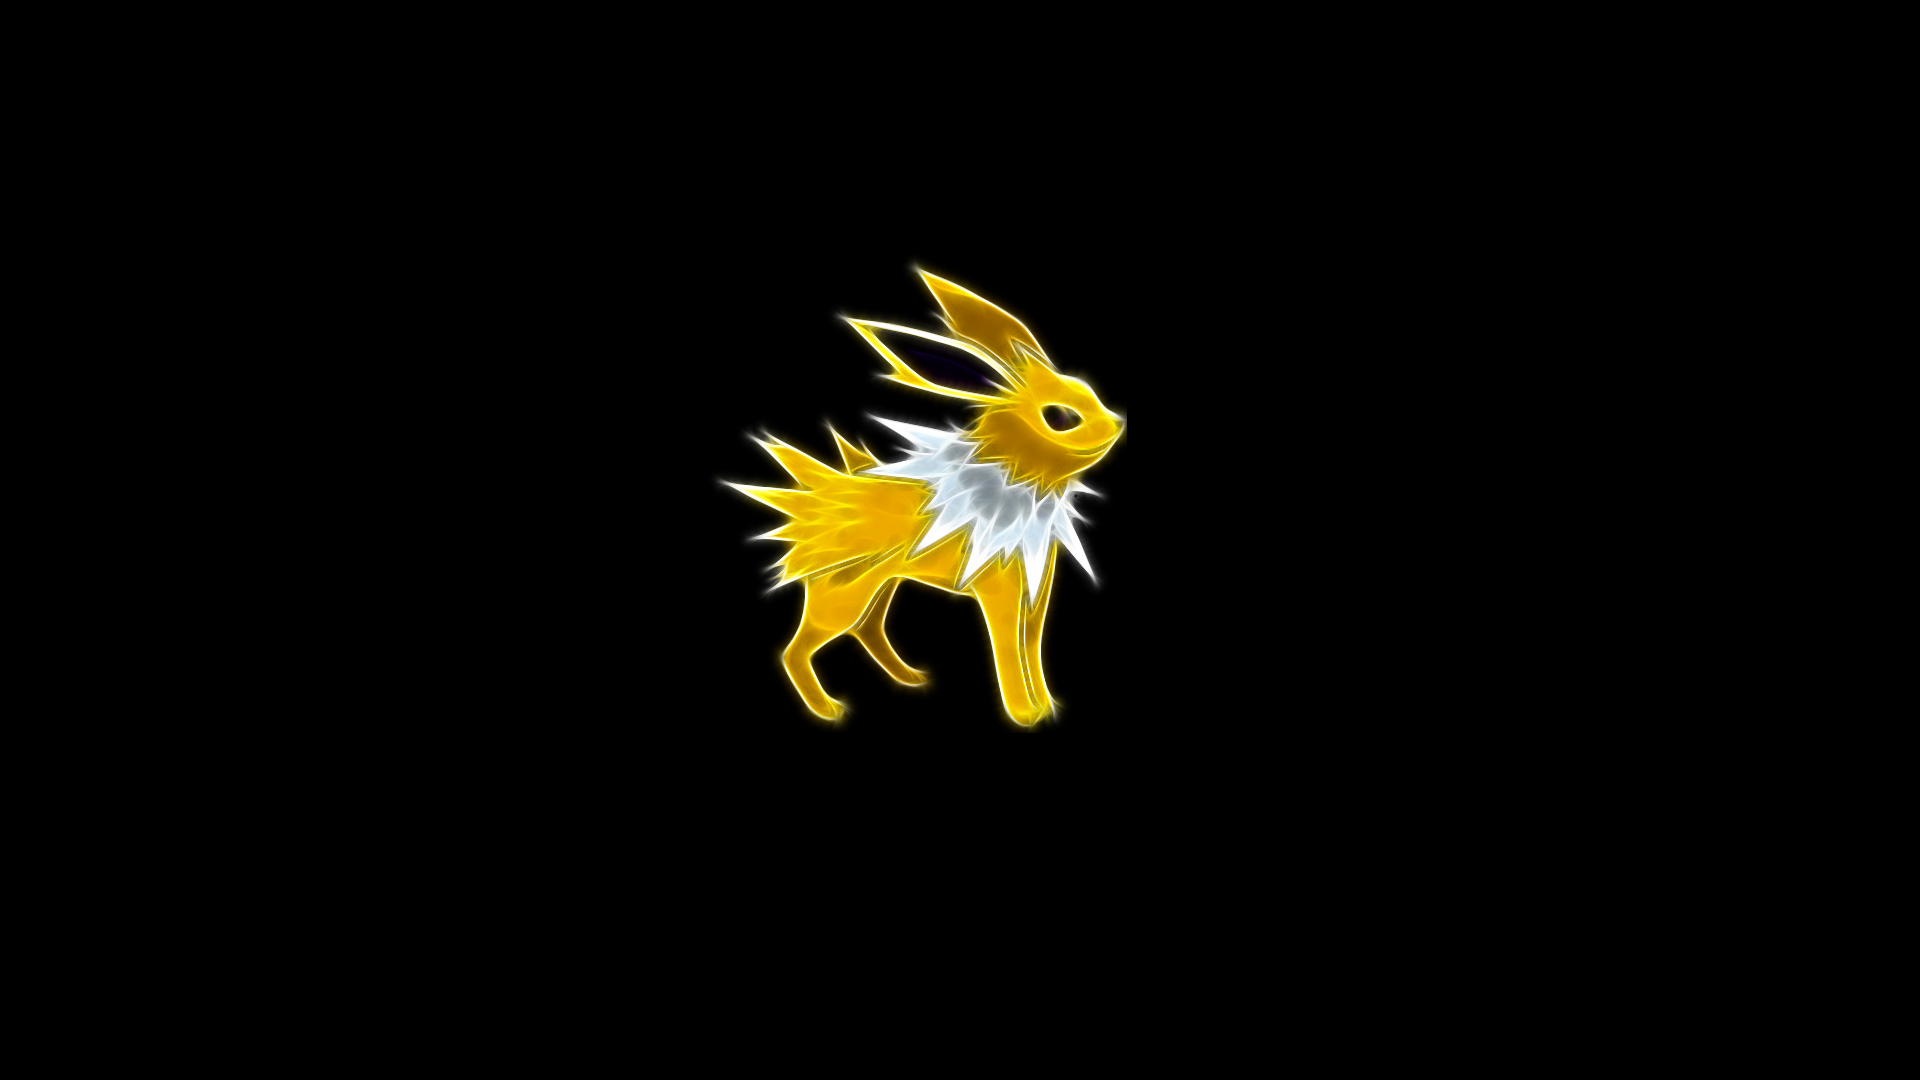 Jolteon Pokemon Phone Wallpaper